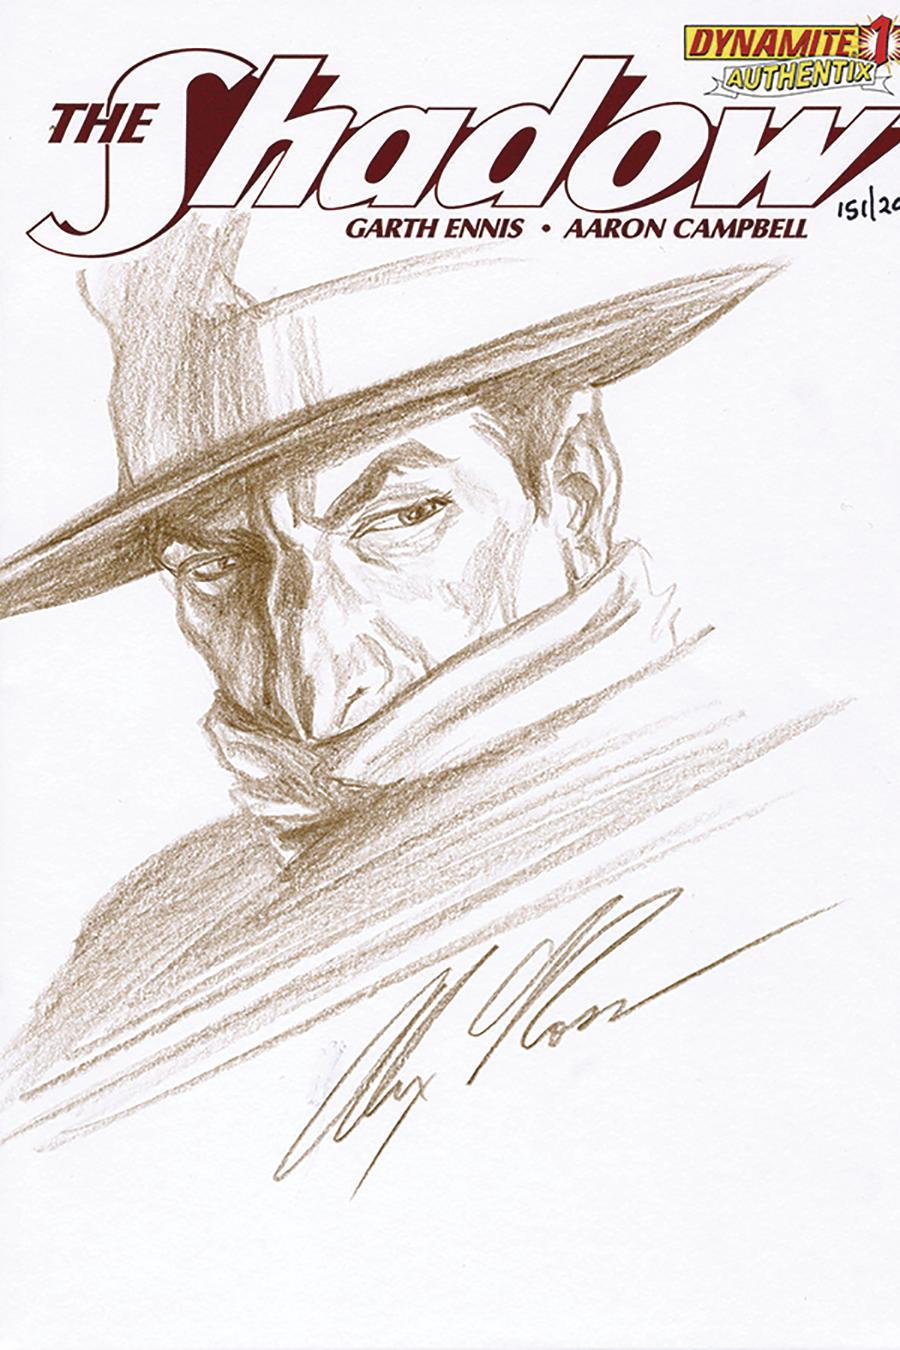 Shadow Vol 5 #1 Cover Z-G Remarked By Alex Ross